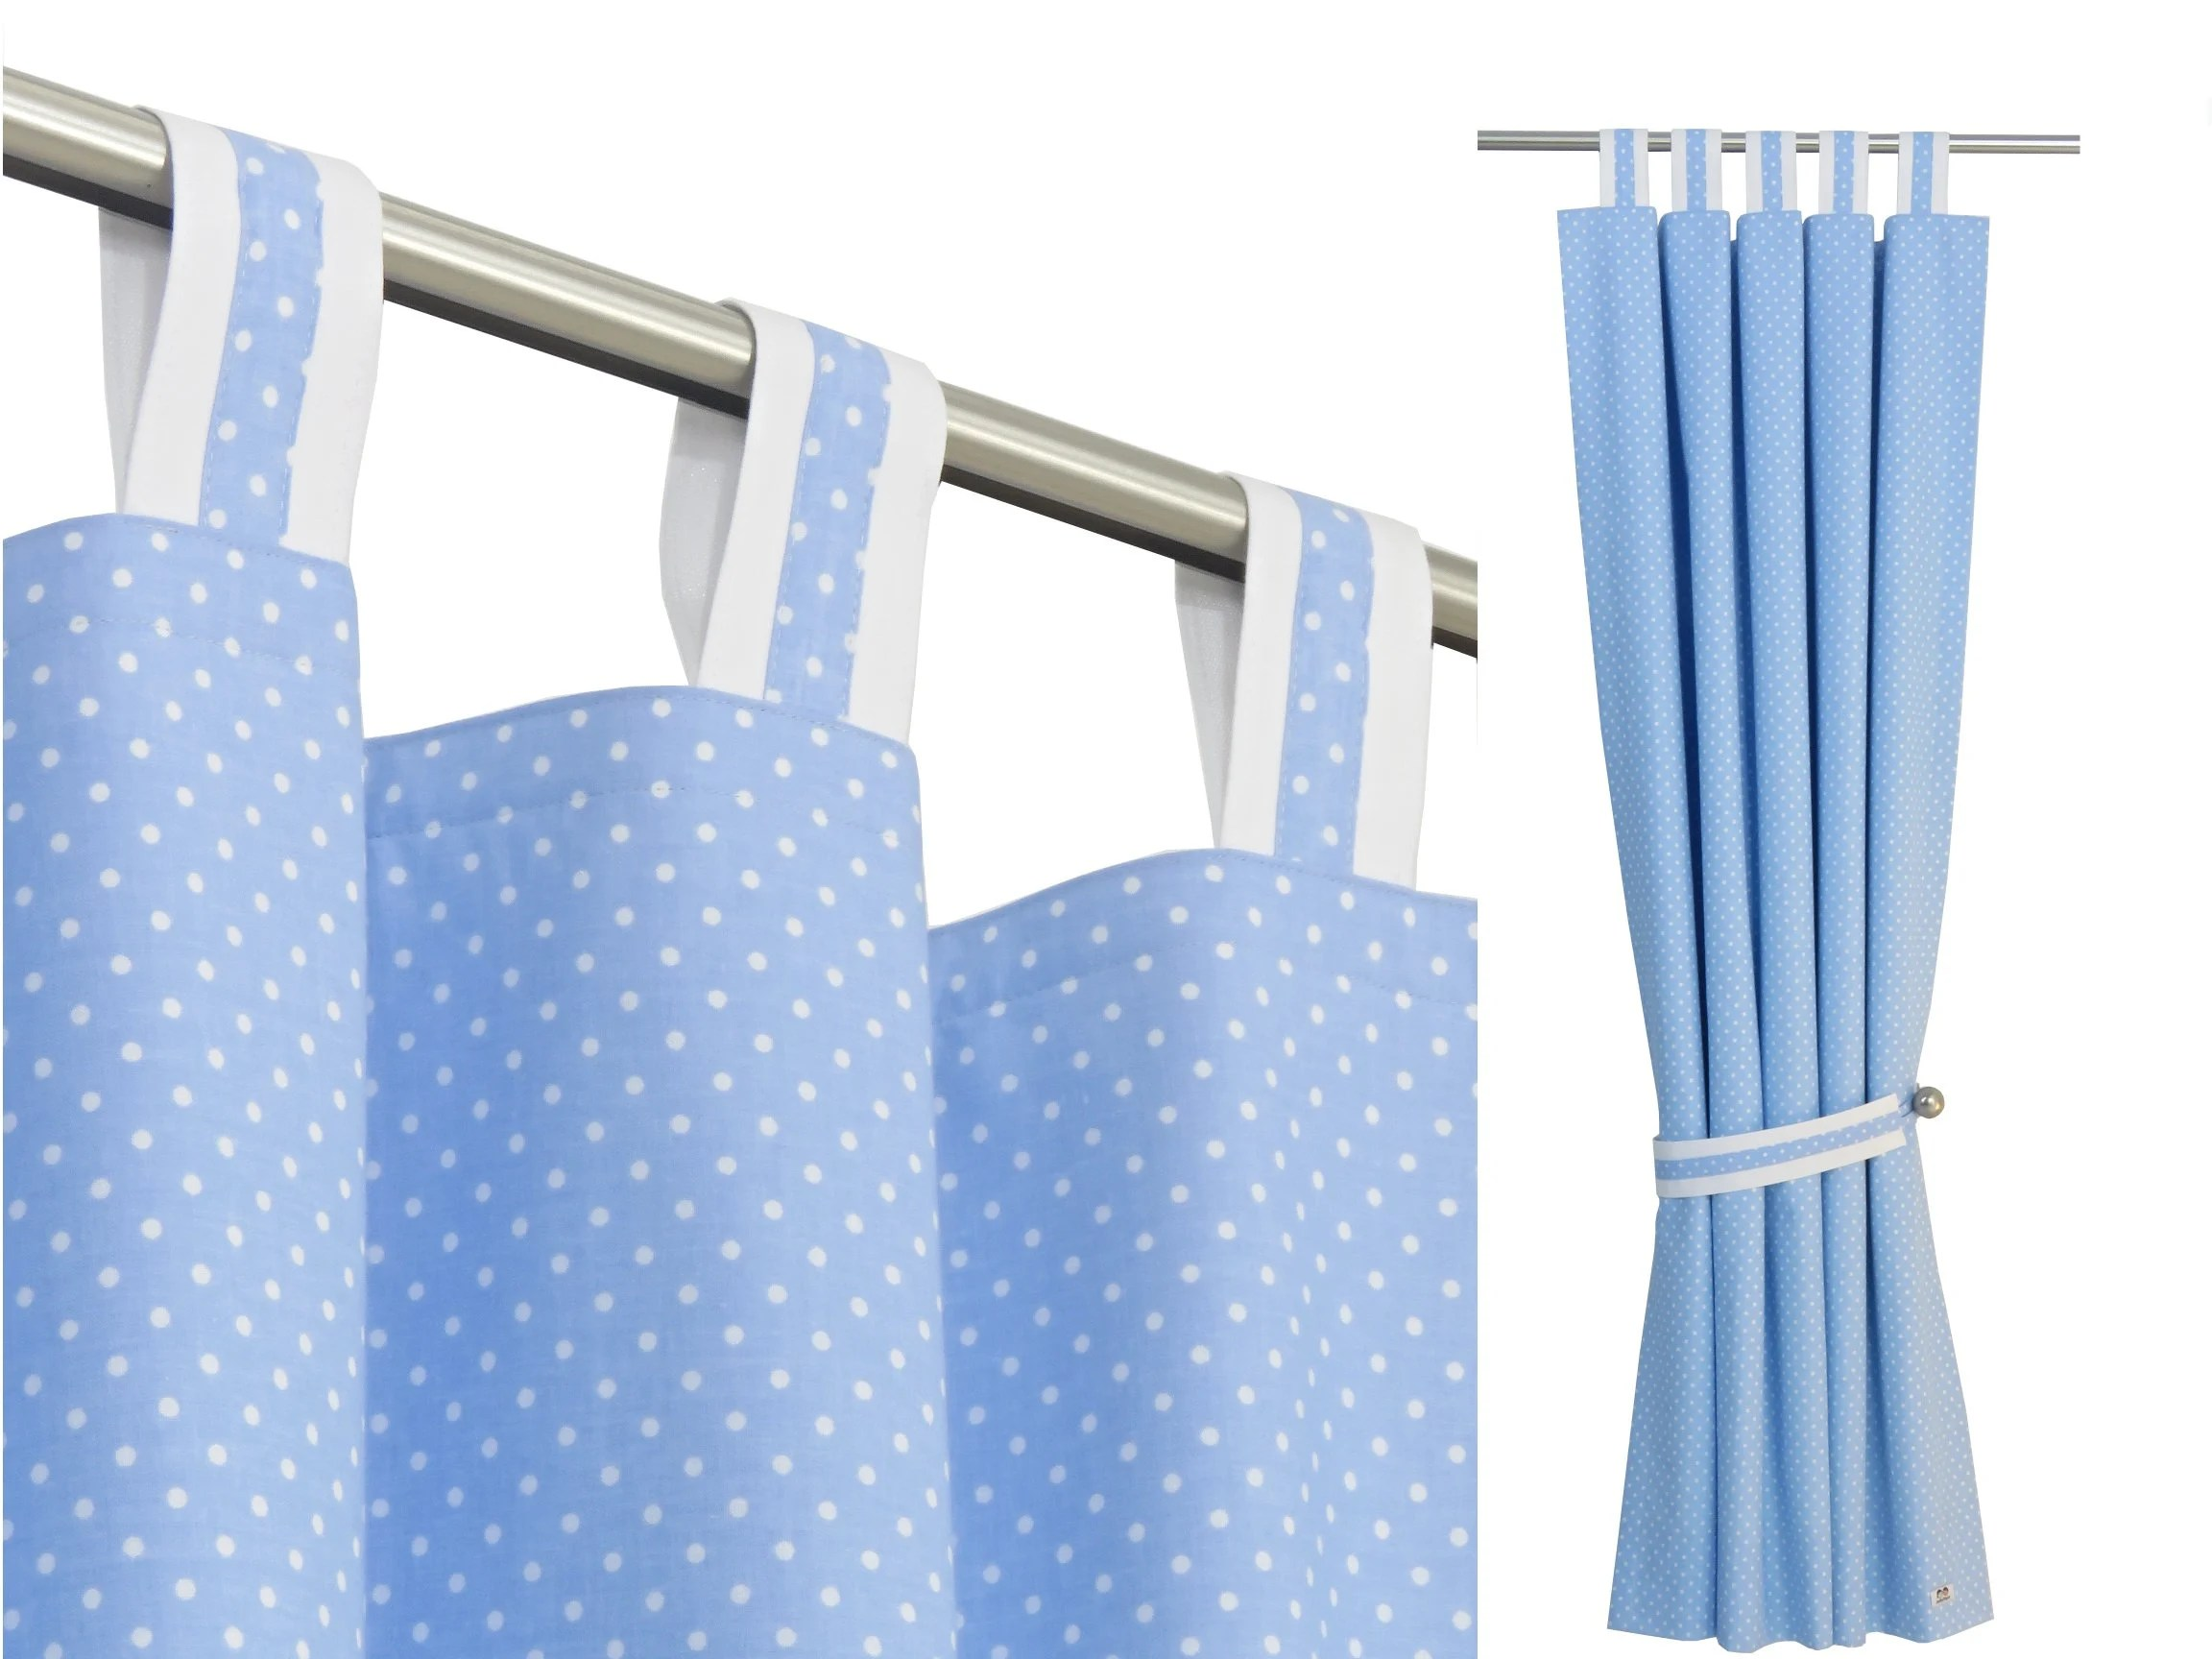 Boys Nursery Curtains Boys Nursery Curtains Baby Blue Nursery Curtains Nursery Window Drapes Blue White Nursery Blackout Curtains Different Lengths Ready To Ship